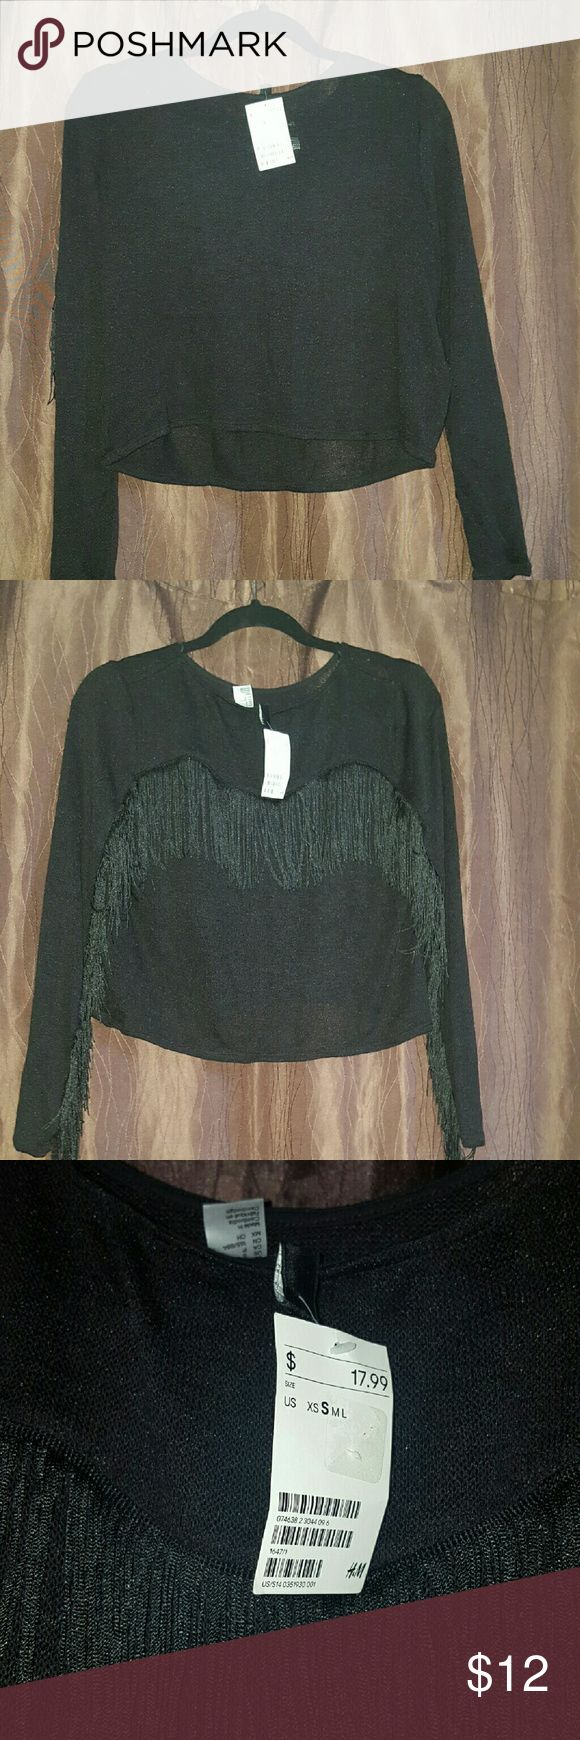 Nwt black fringe top from H&M NWT. Has fringing on the back and arms. H&M Tops